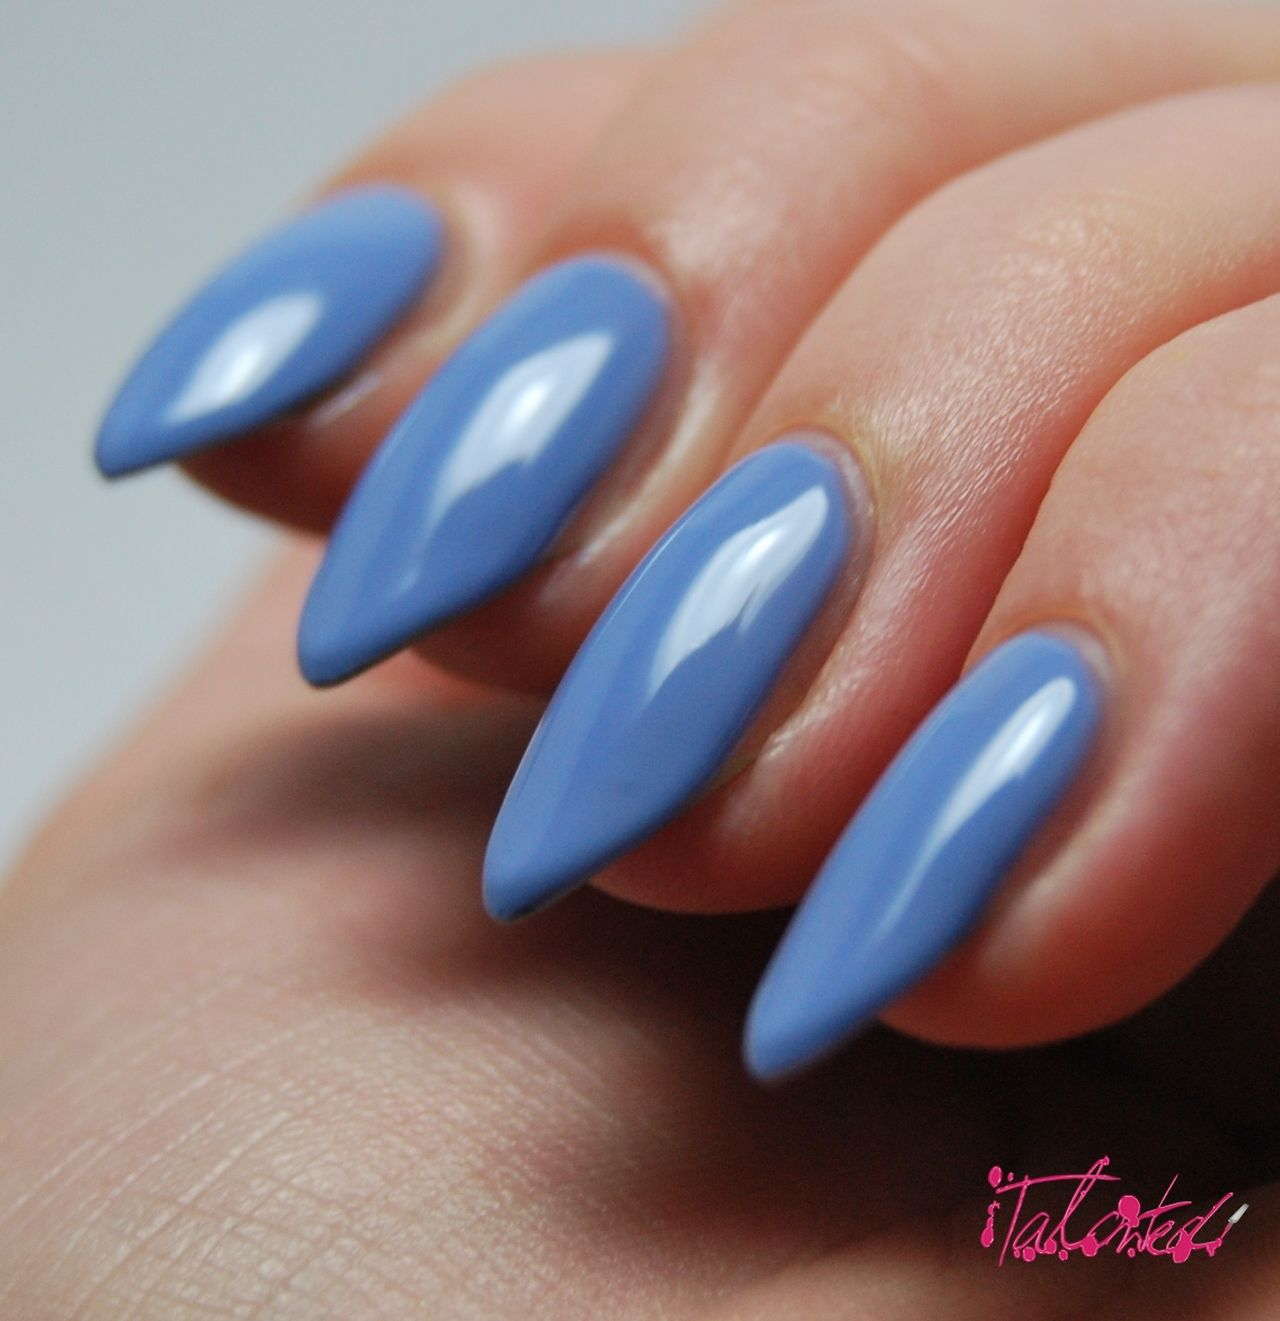 Essie Lapis Of Luxury Review | Manicures & Nail Art - Talonted Lex ...